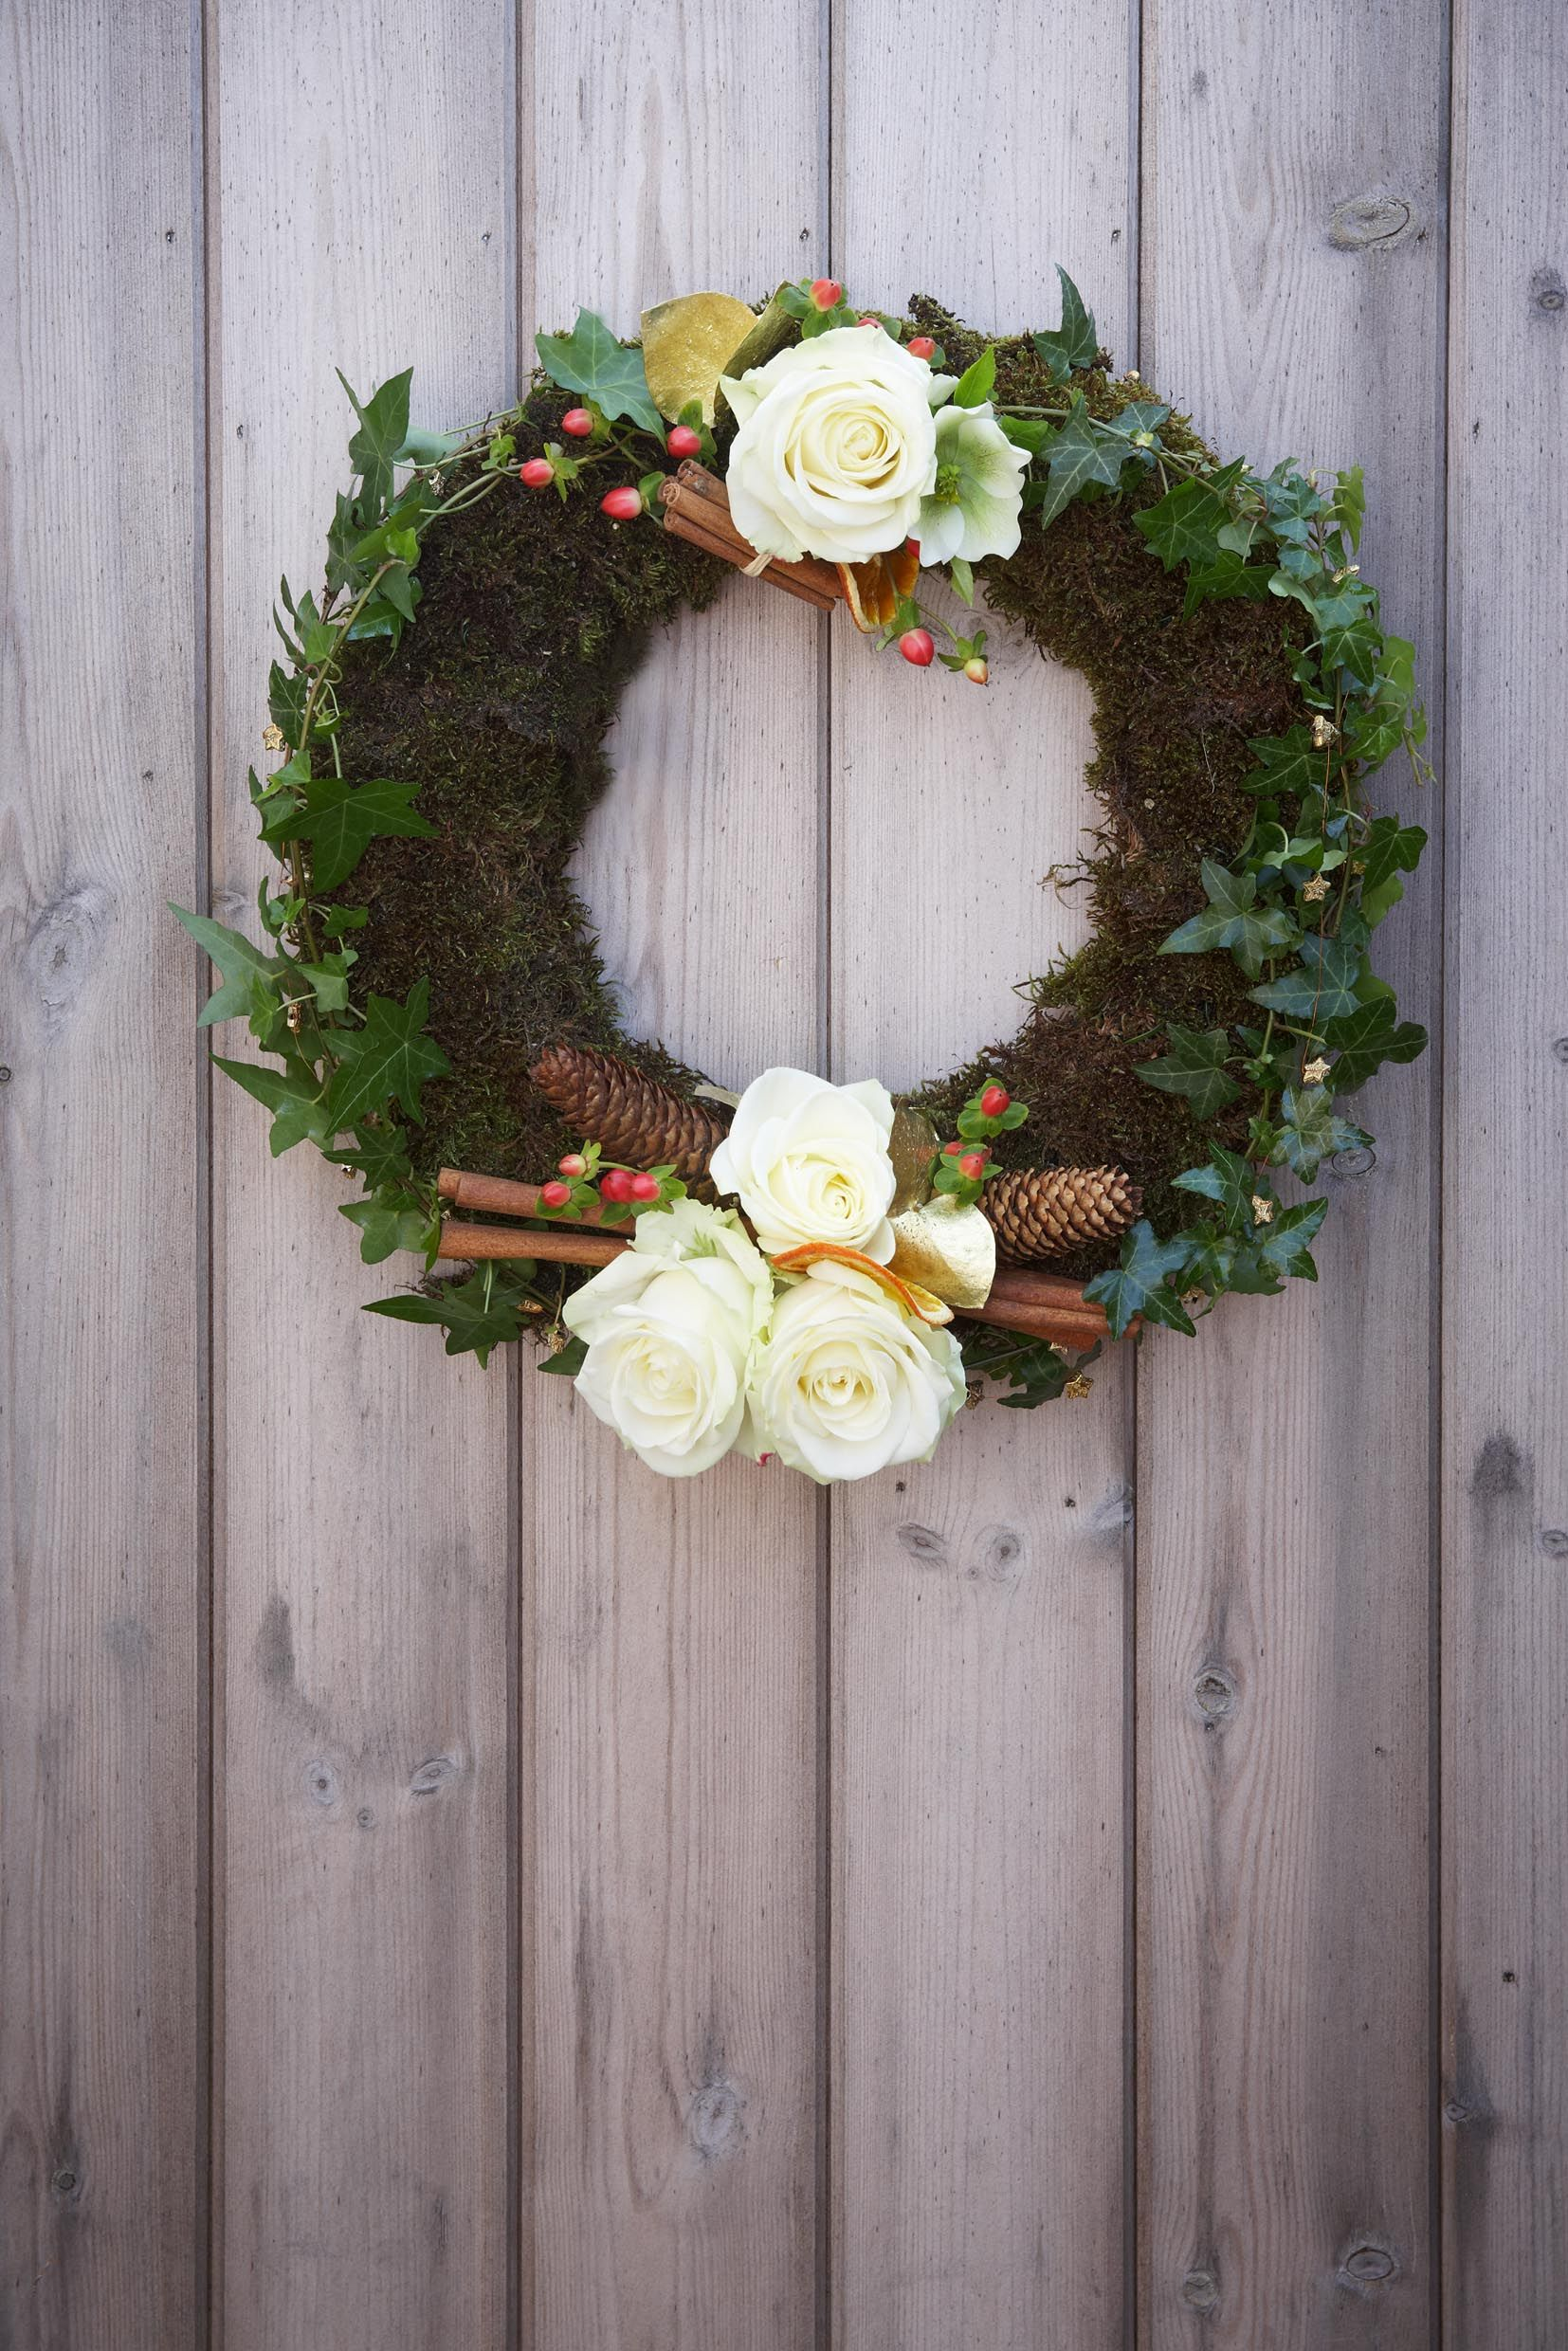 Pin by Interflora on Christmas Wreaths Christmas wreaths